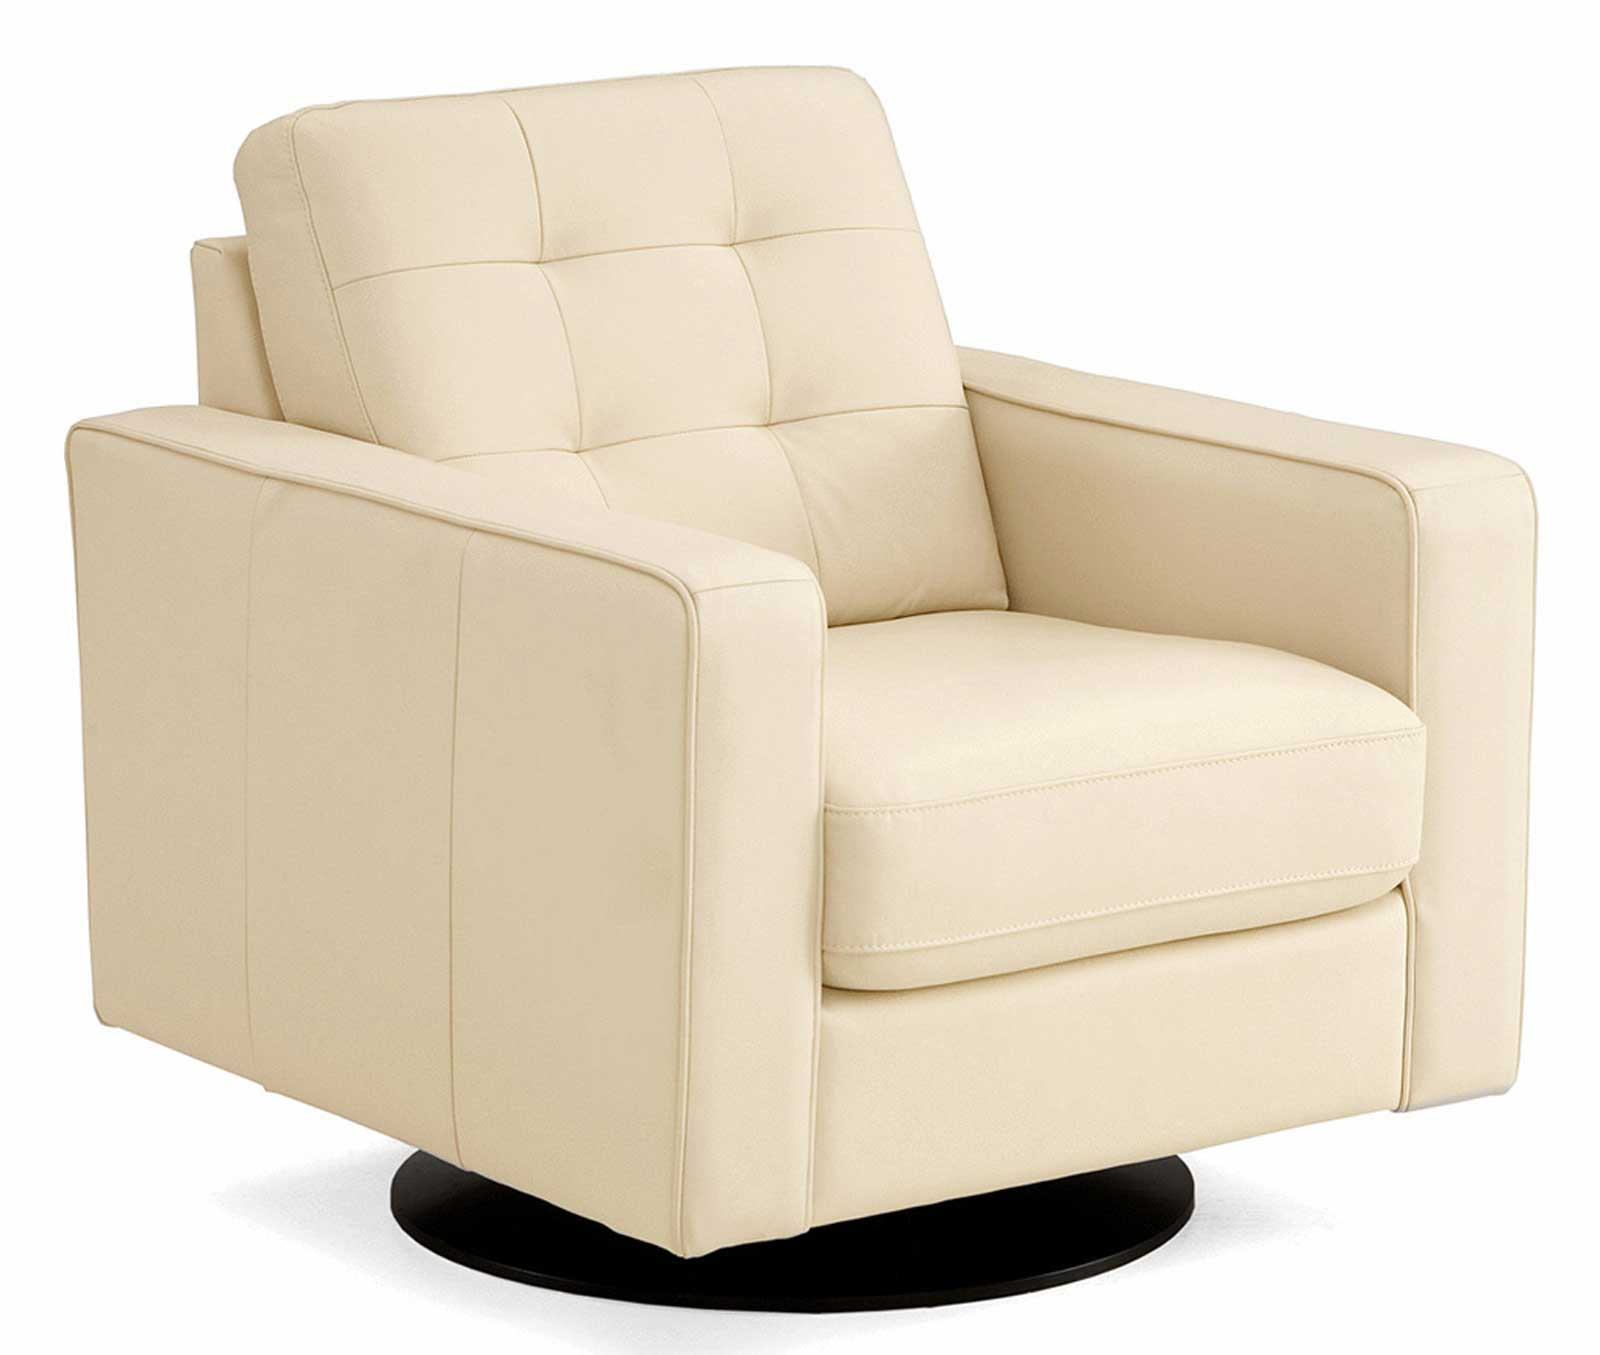 Swivel chairs living room furniture